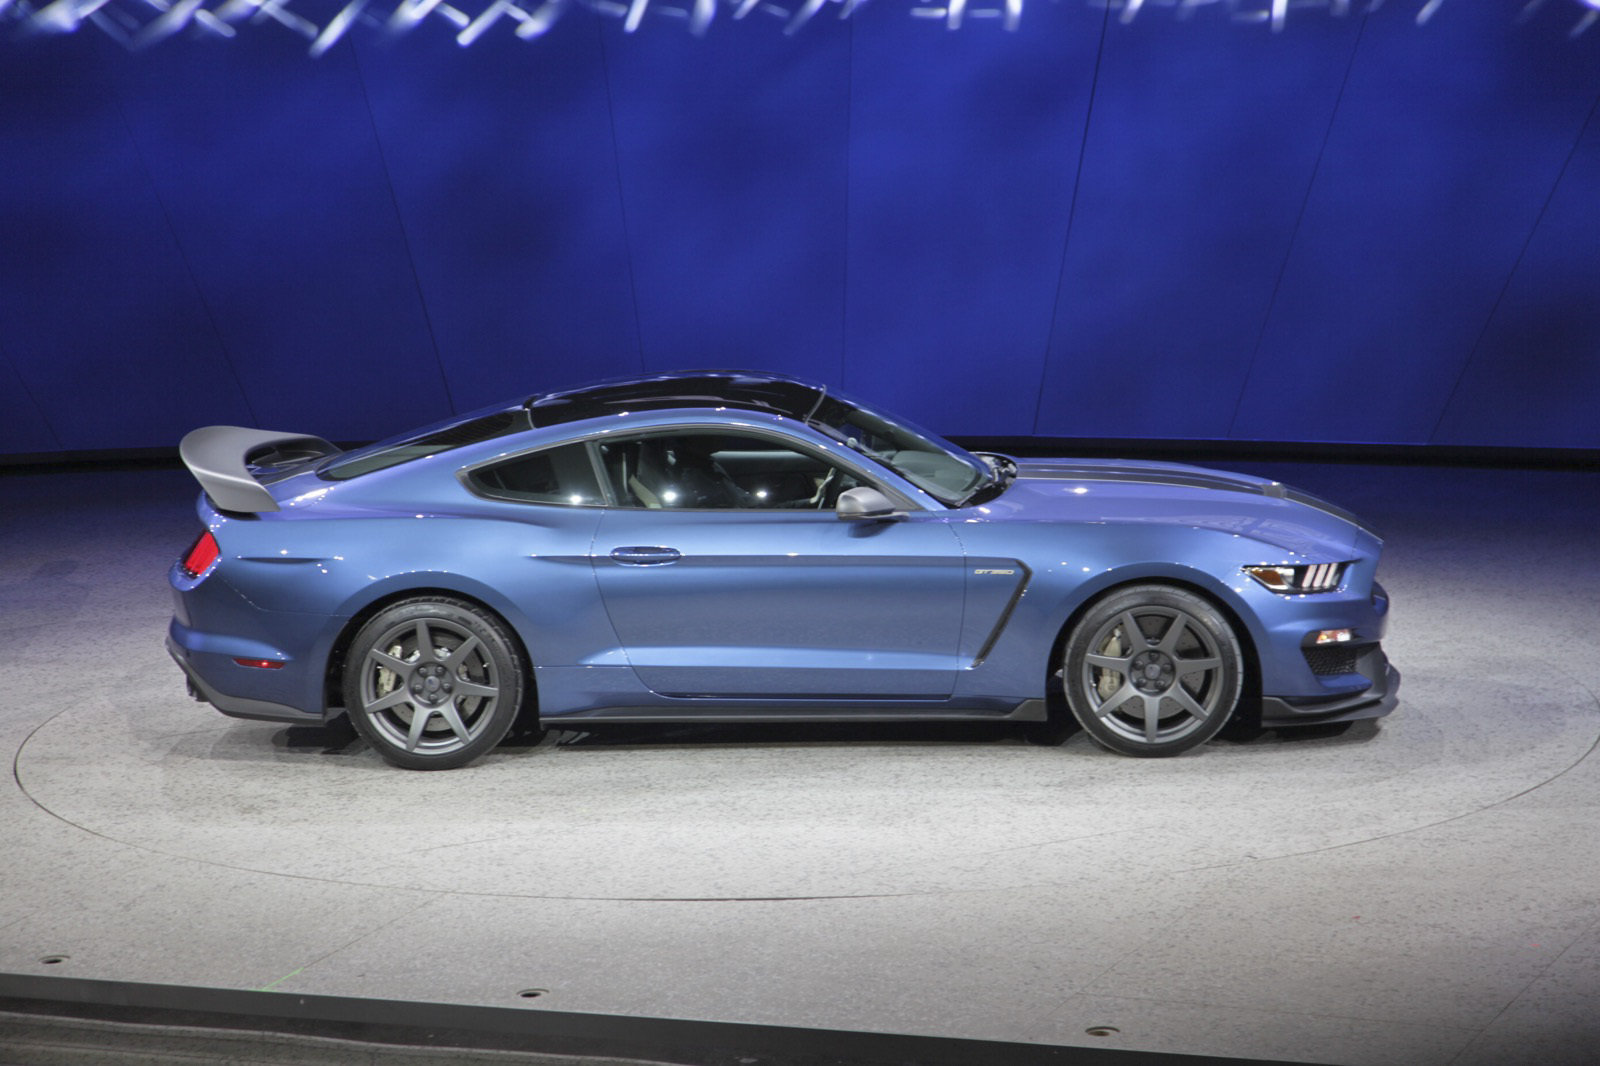 2018 Ford Mustang Shelby GT350R photo - 4